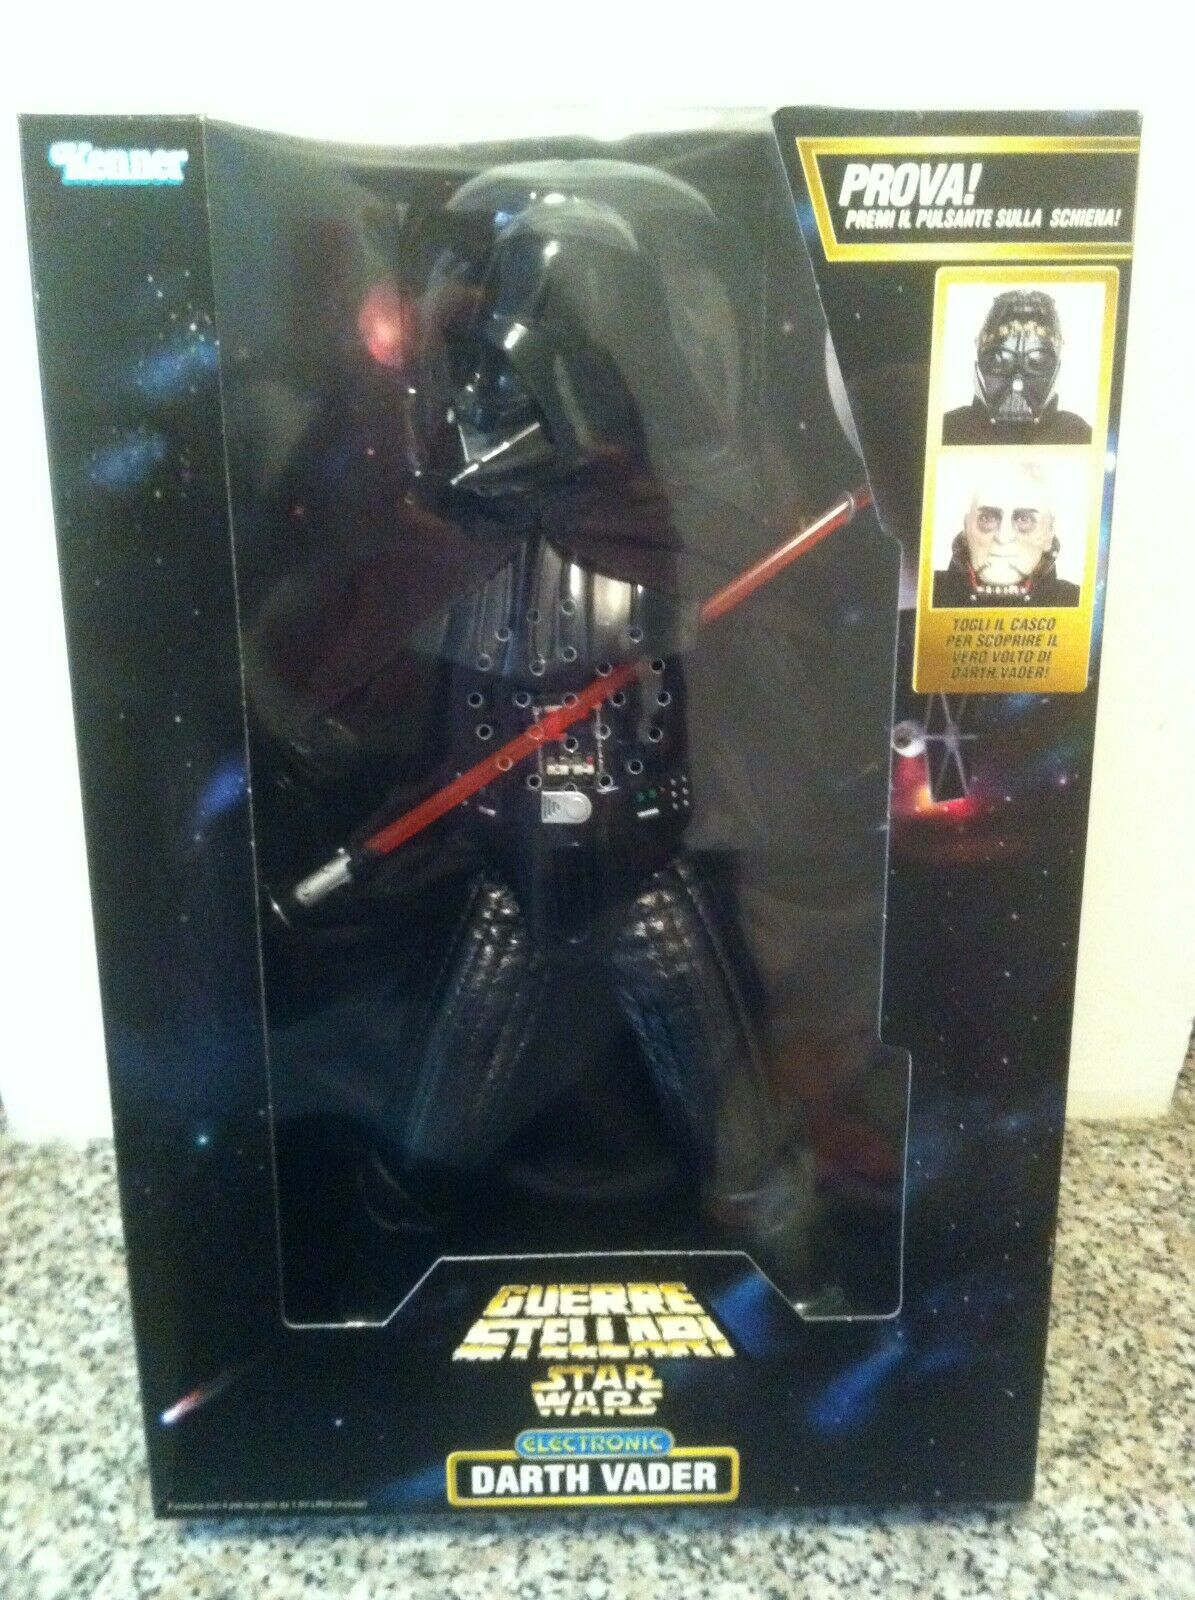 Guerre Stellari Star Wars Darth Vader action doll Kenner Hasbro 34 cm electronic